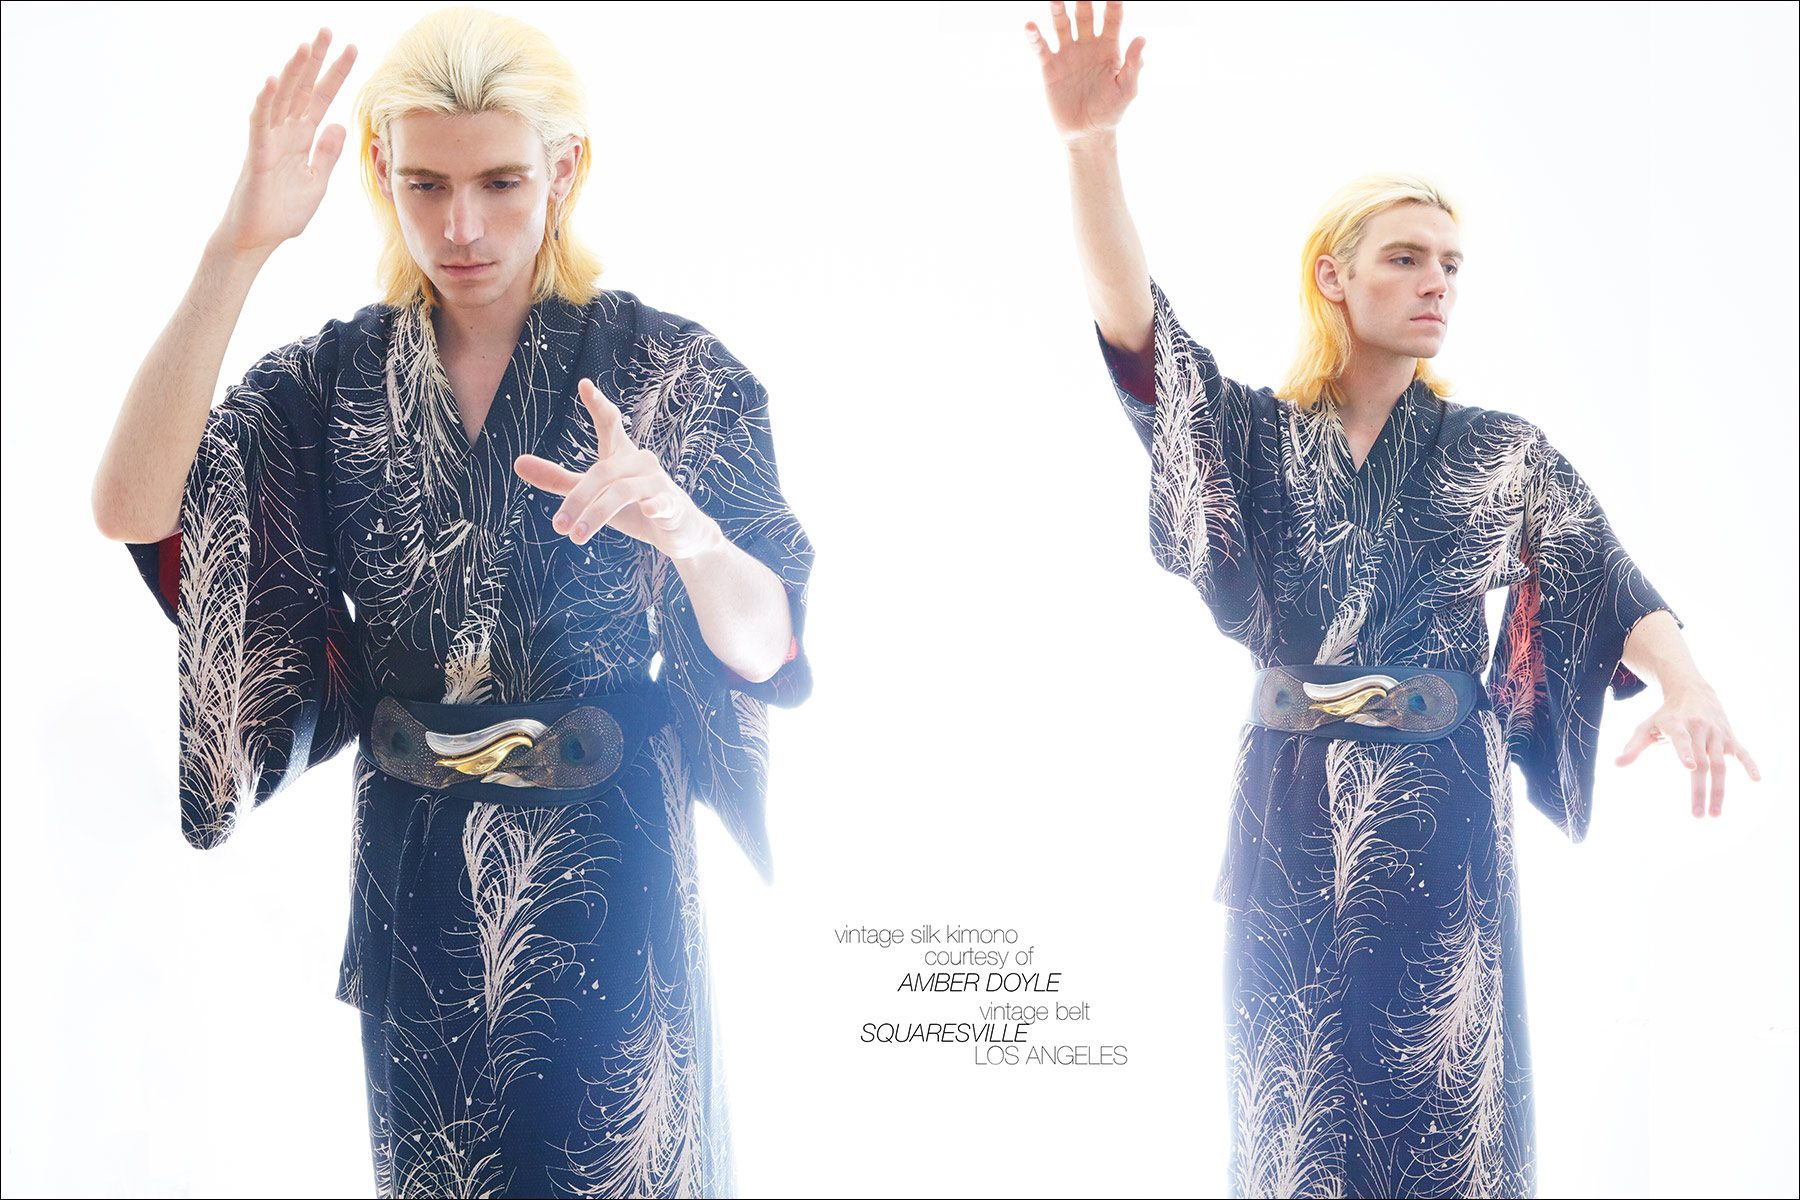 New York City musician Brian Hill photographed in a vintage silk kimono. Photography by Alexander Thompson for Ponyboy magazine NY, with men's grooming by Ahbi Nishman.